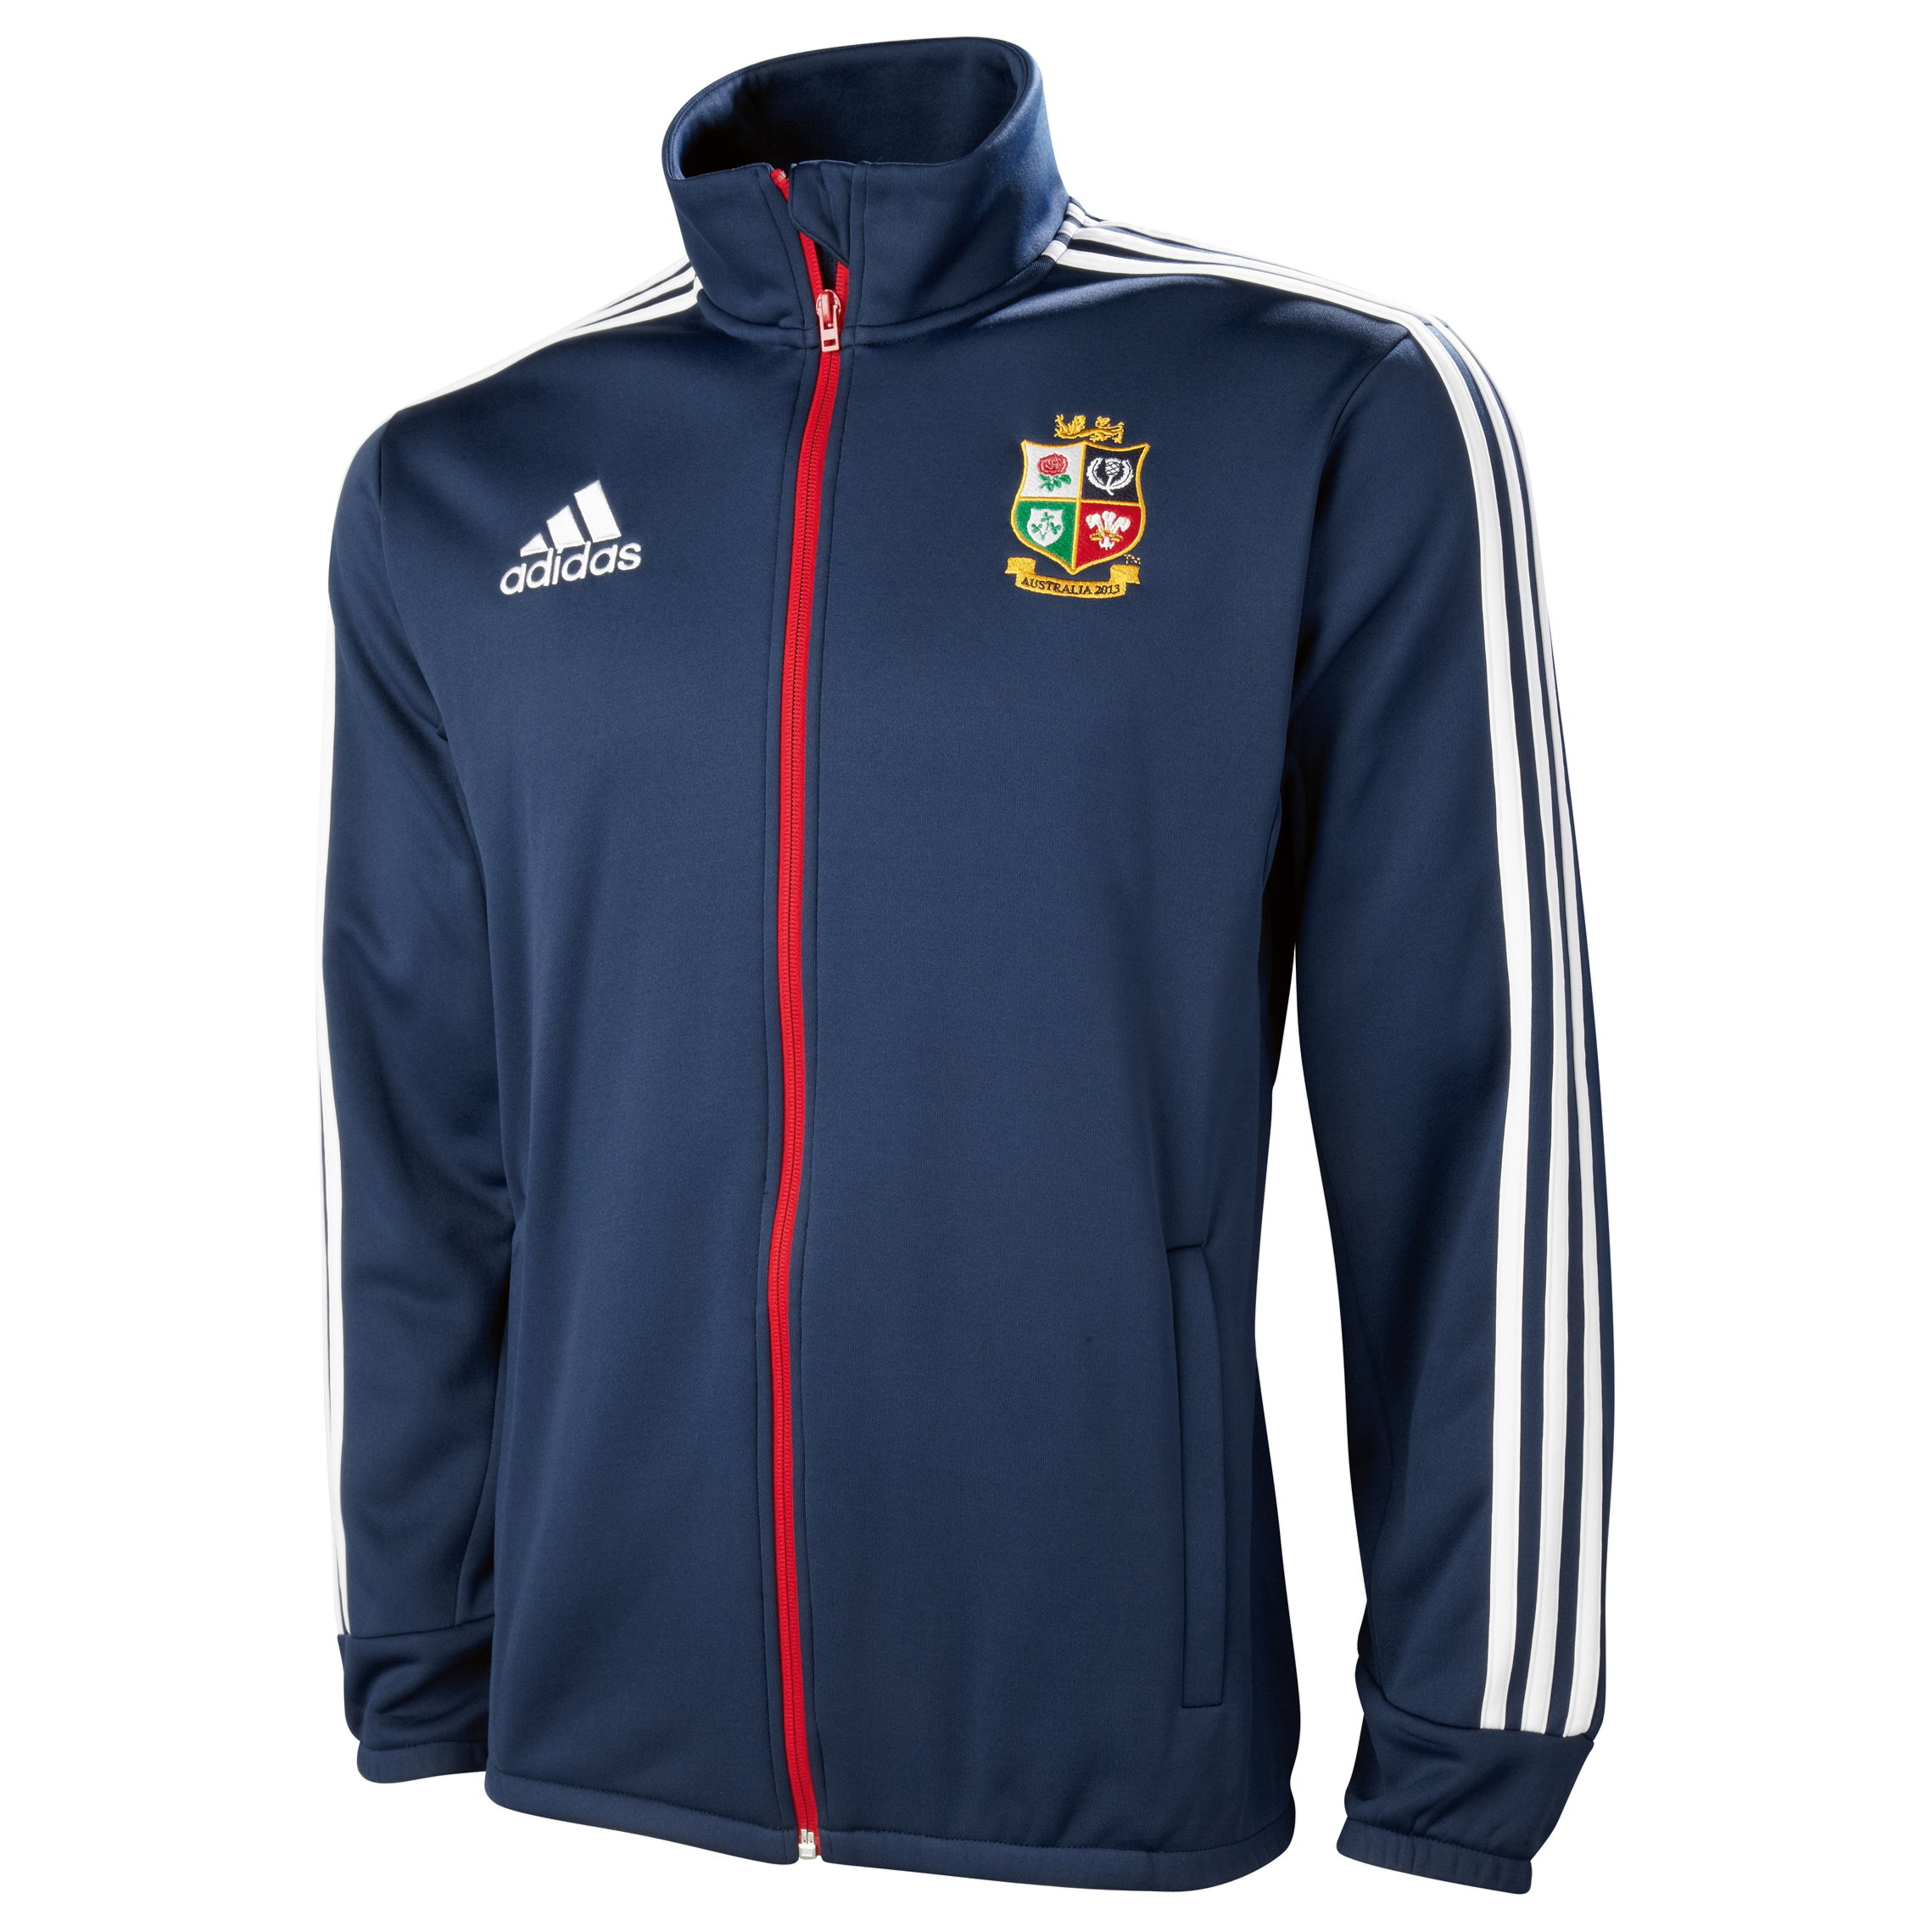 British & Irish Lions Fleece - Collegiate Navy/White